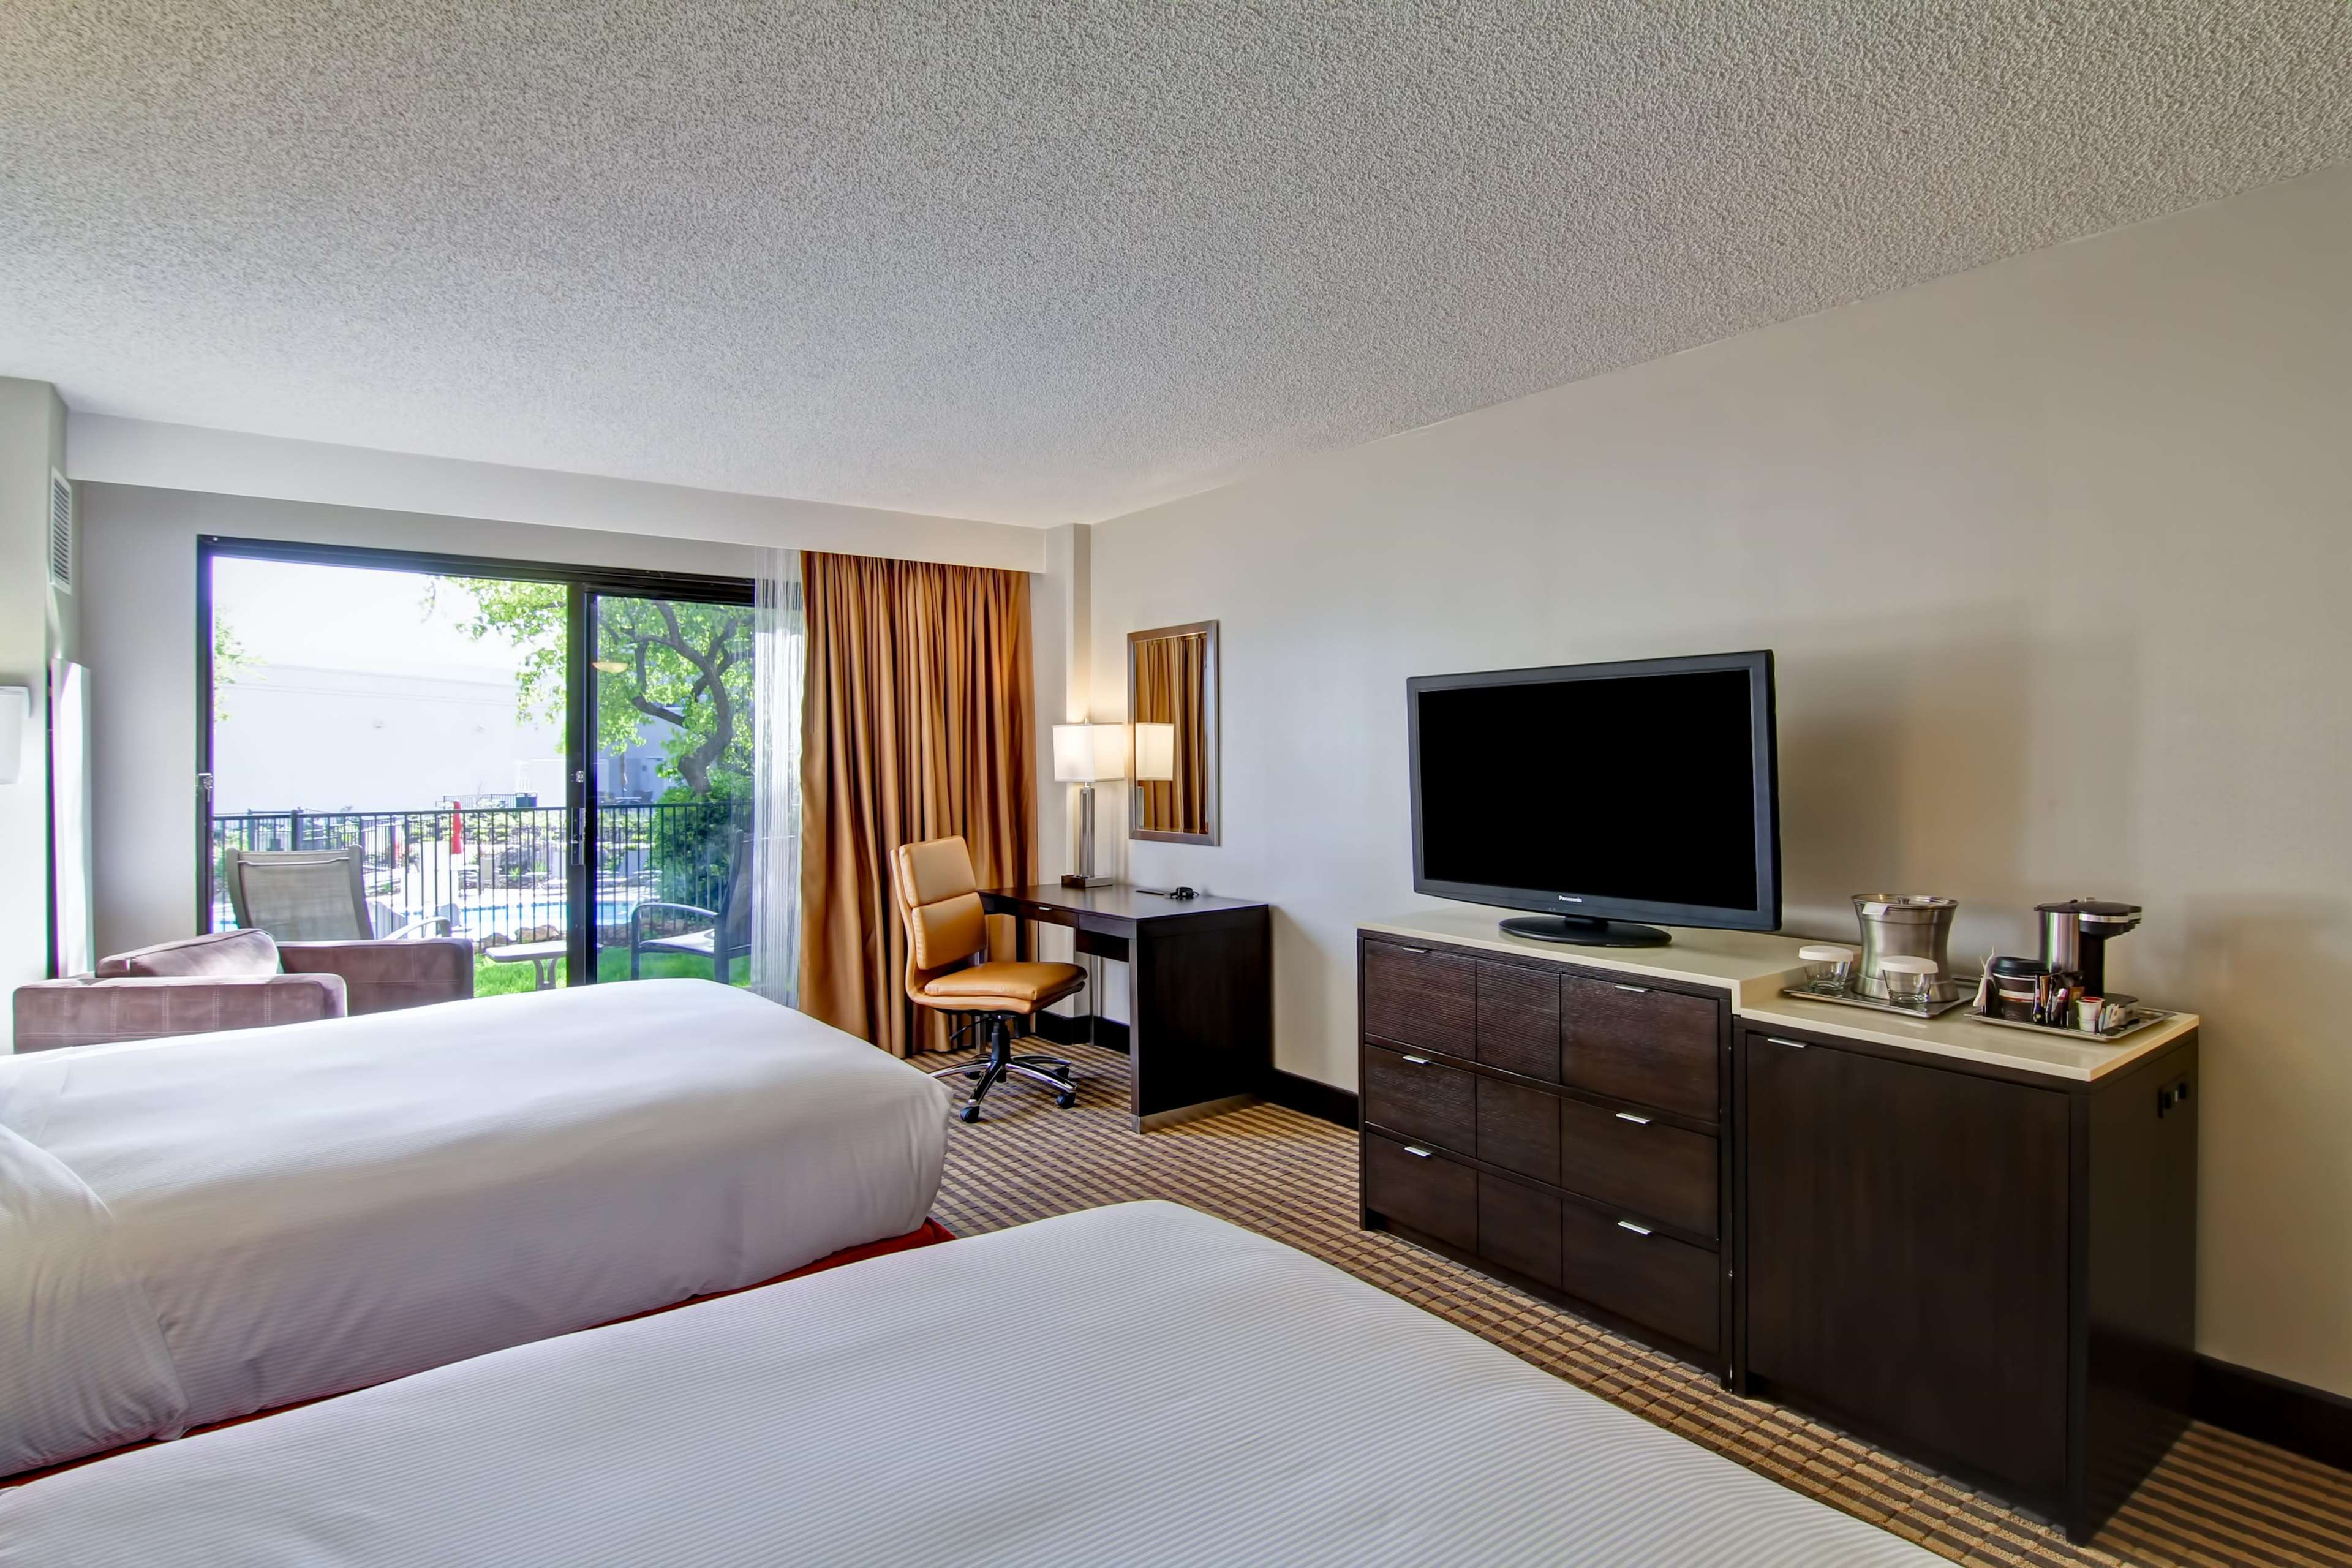 DoubleTree by Hilton Hotel Pleasanton at the Club image 27